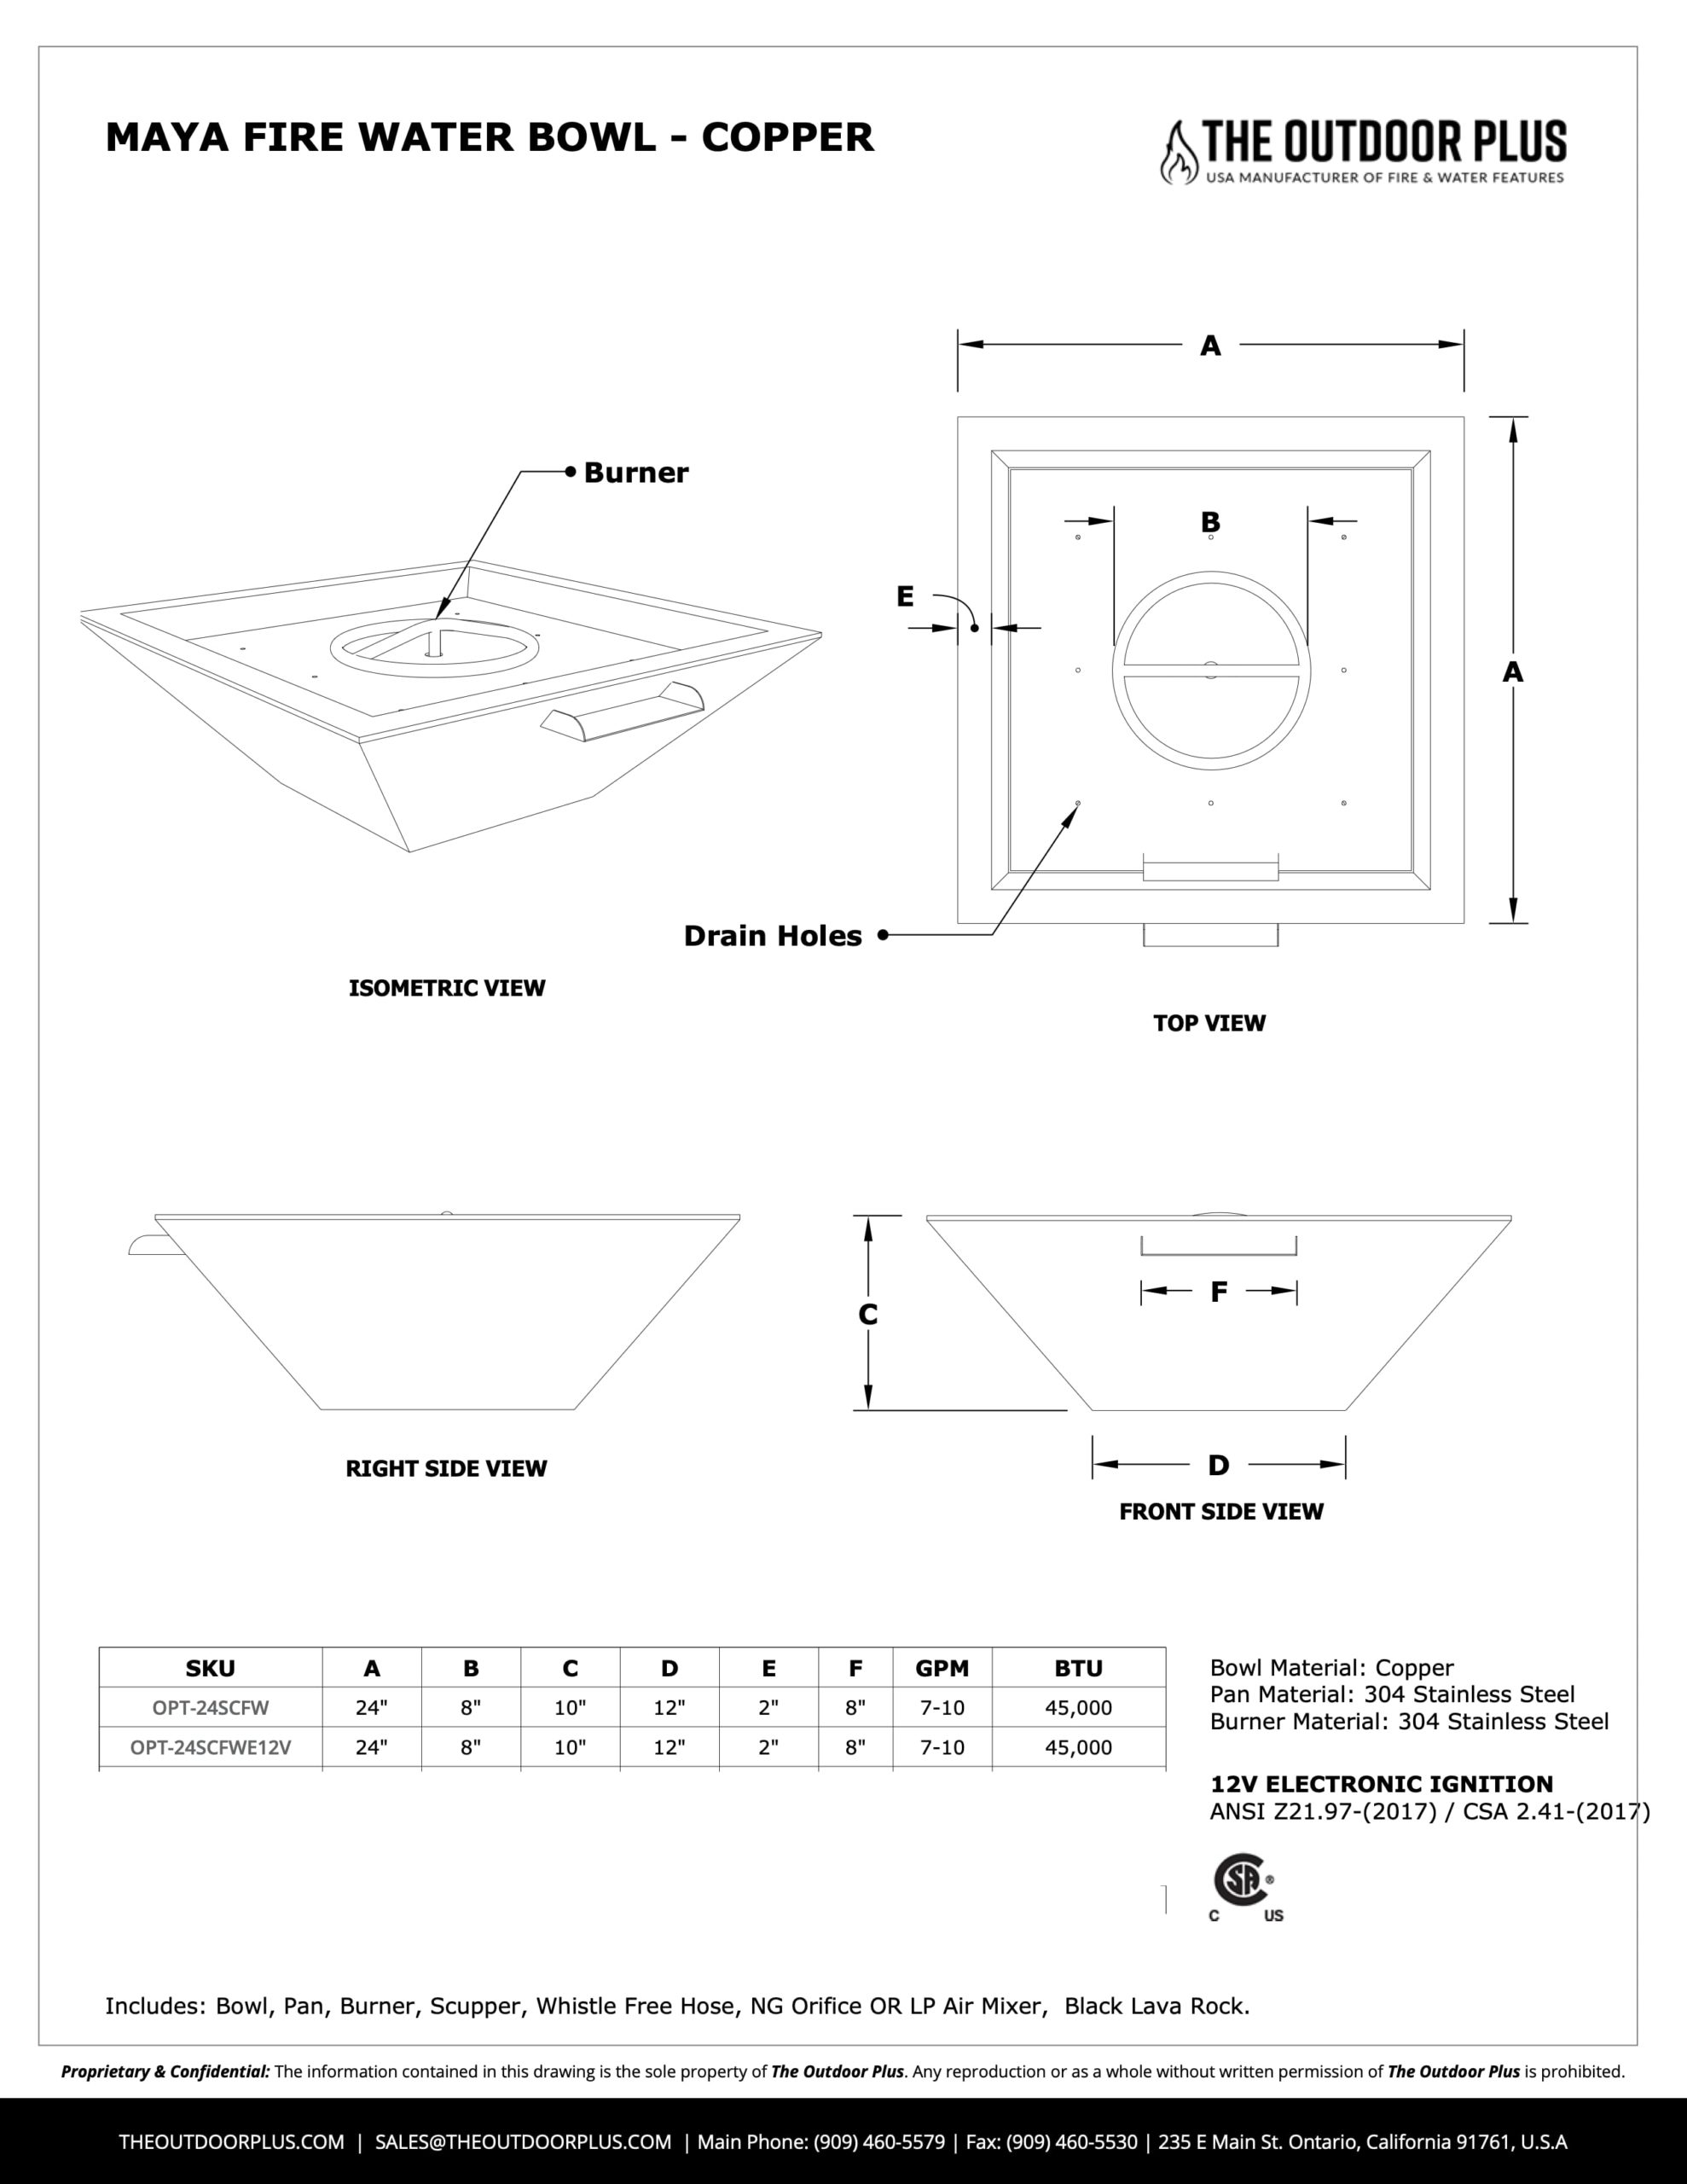 Maya Copper and Fire Water Bowl Spec Sheets